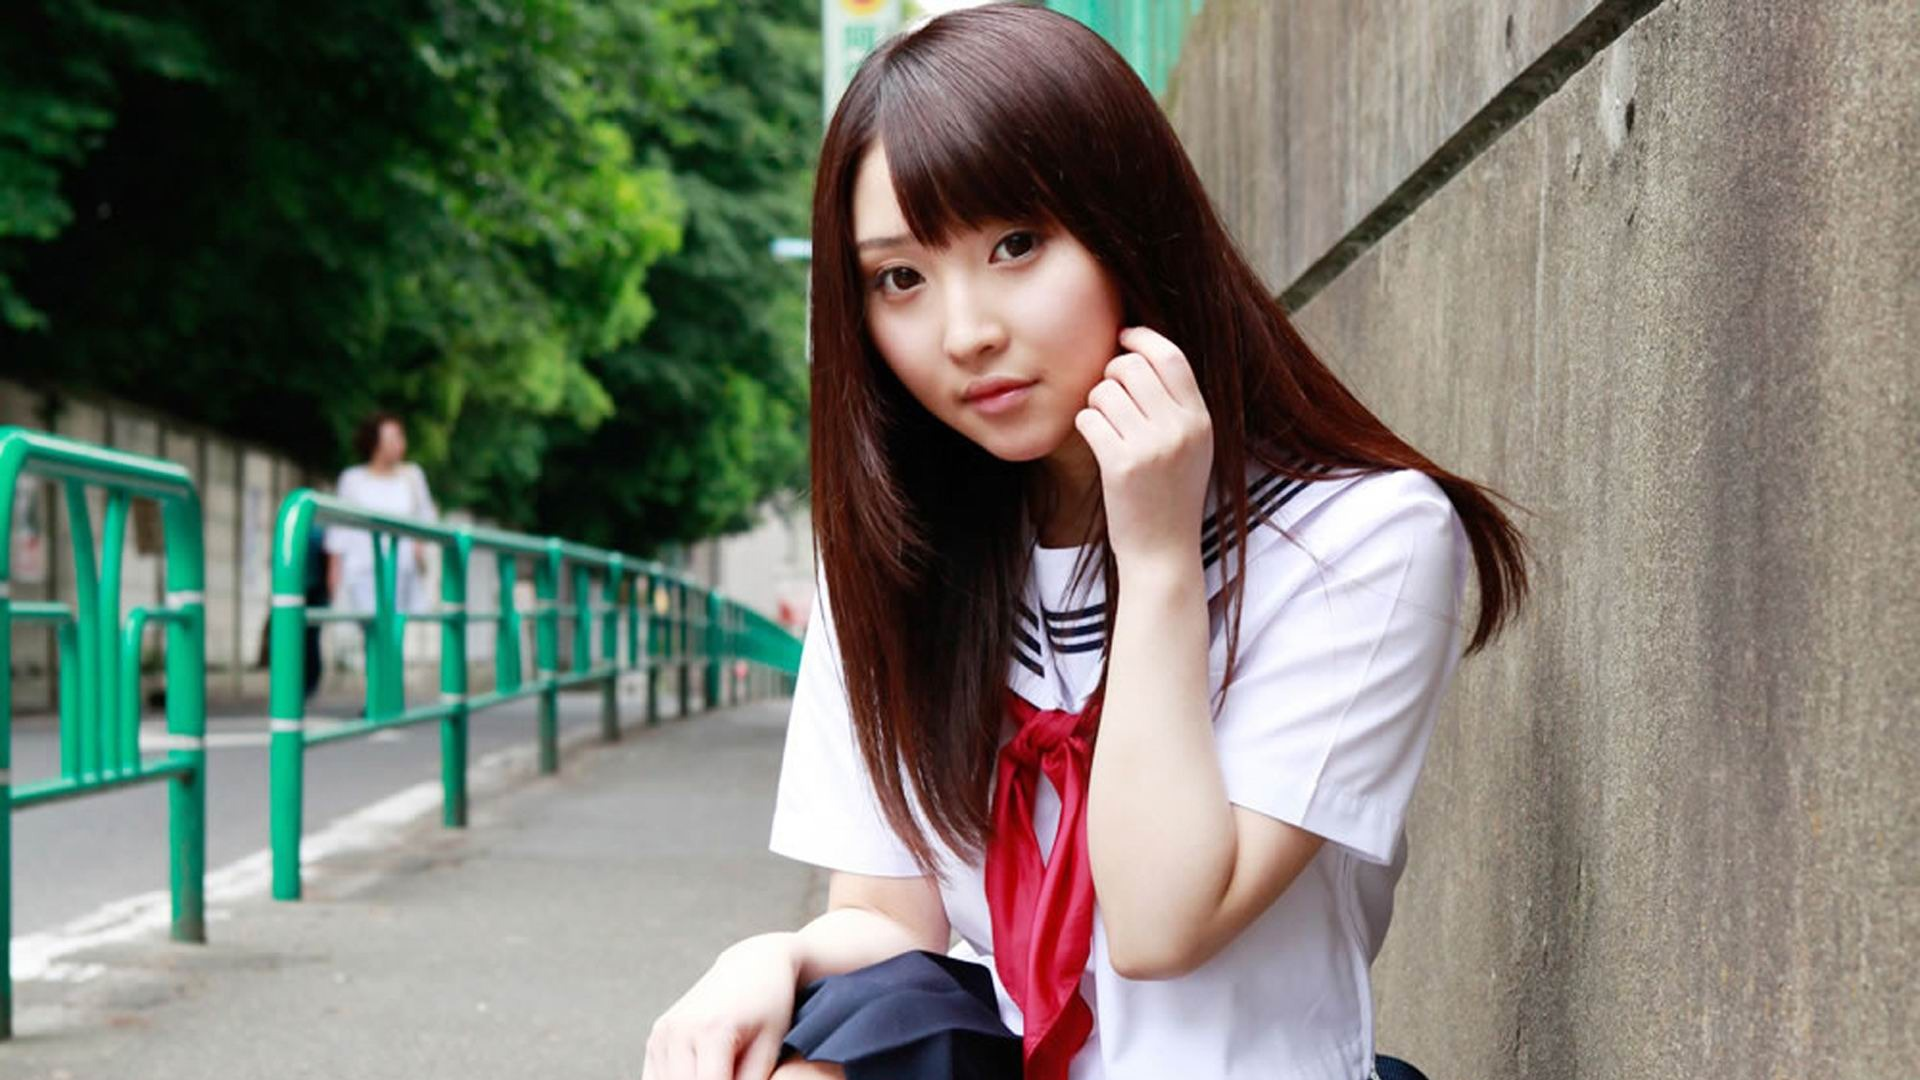 Pure Japanese School Girl With The Beat On The Streets Wallpaper 11